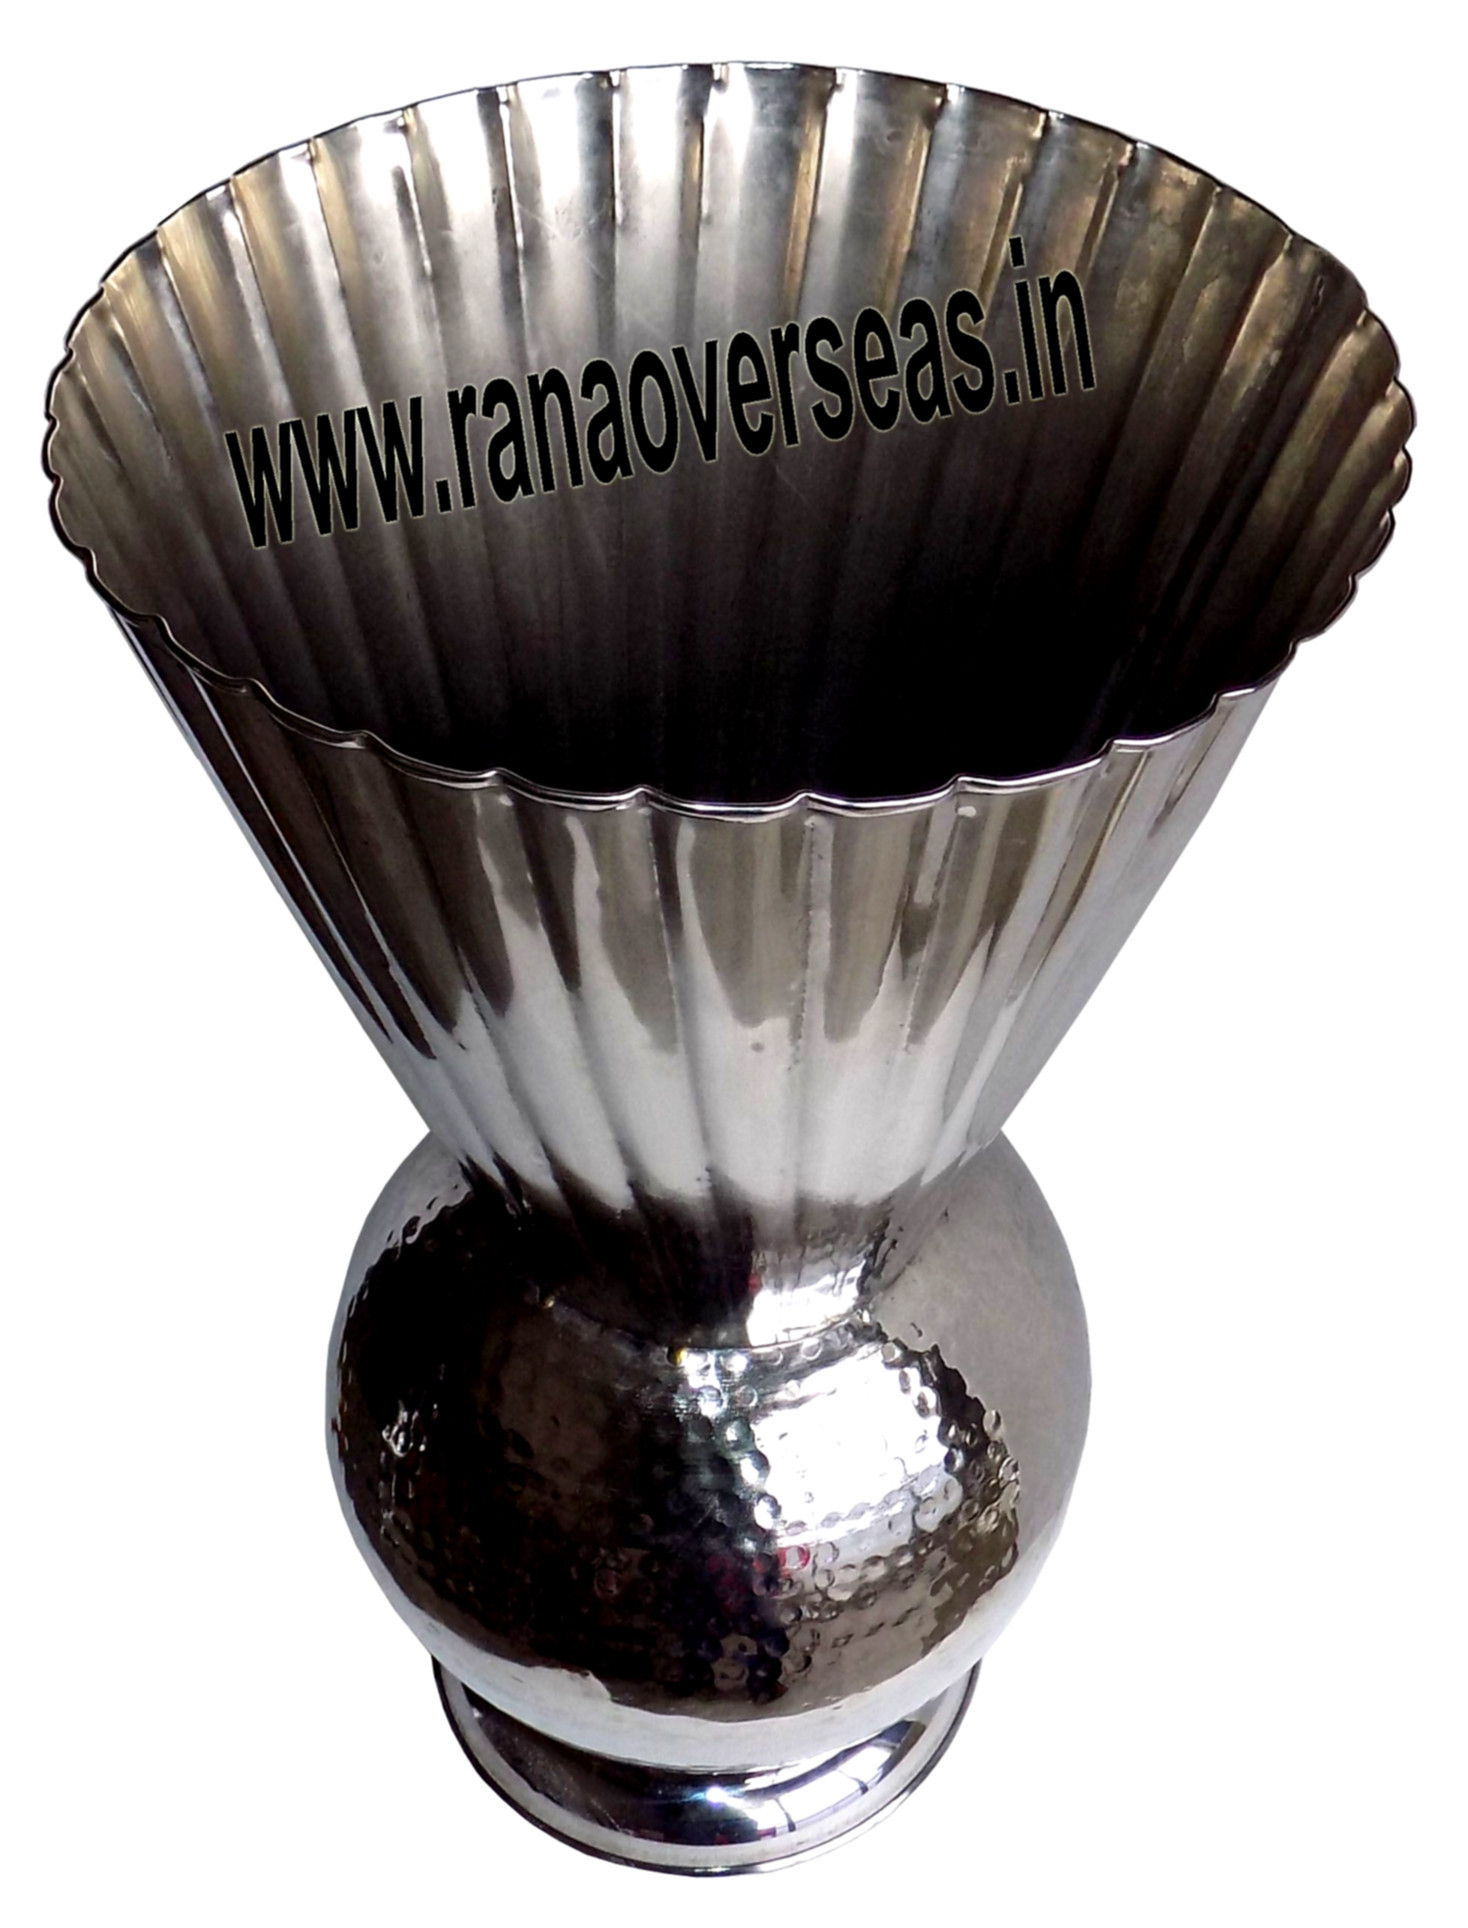 metal flower vases for graves of 32 metal flowers for vase rituals you should know in 32 metal with regard to aluminium metal flower vase 10388 aluminium flower vases designed by